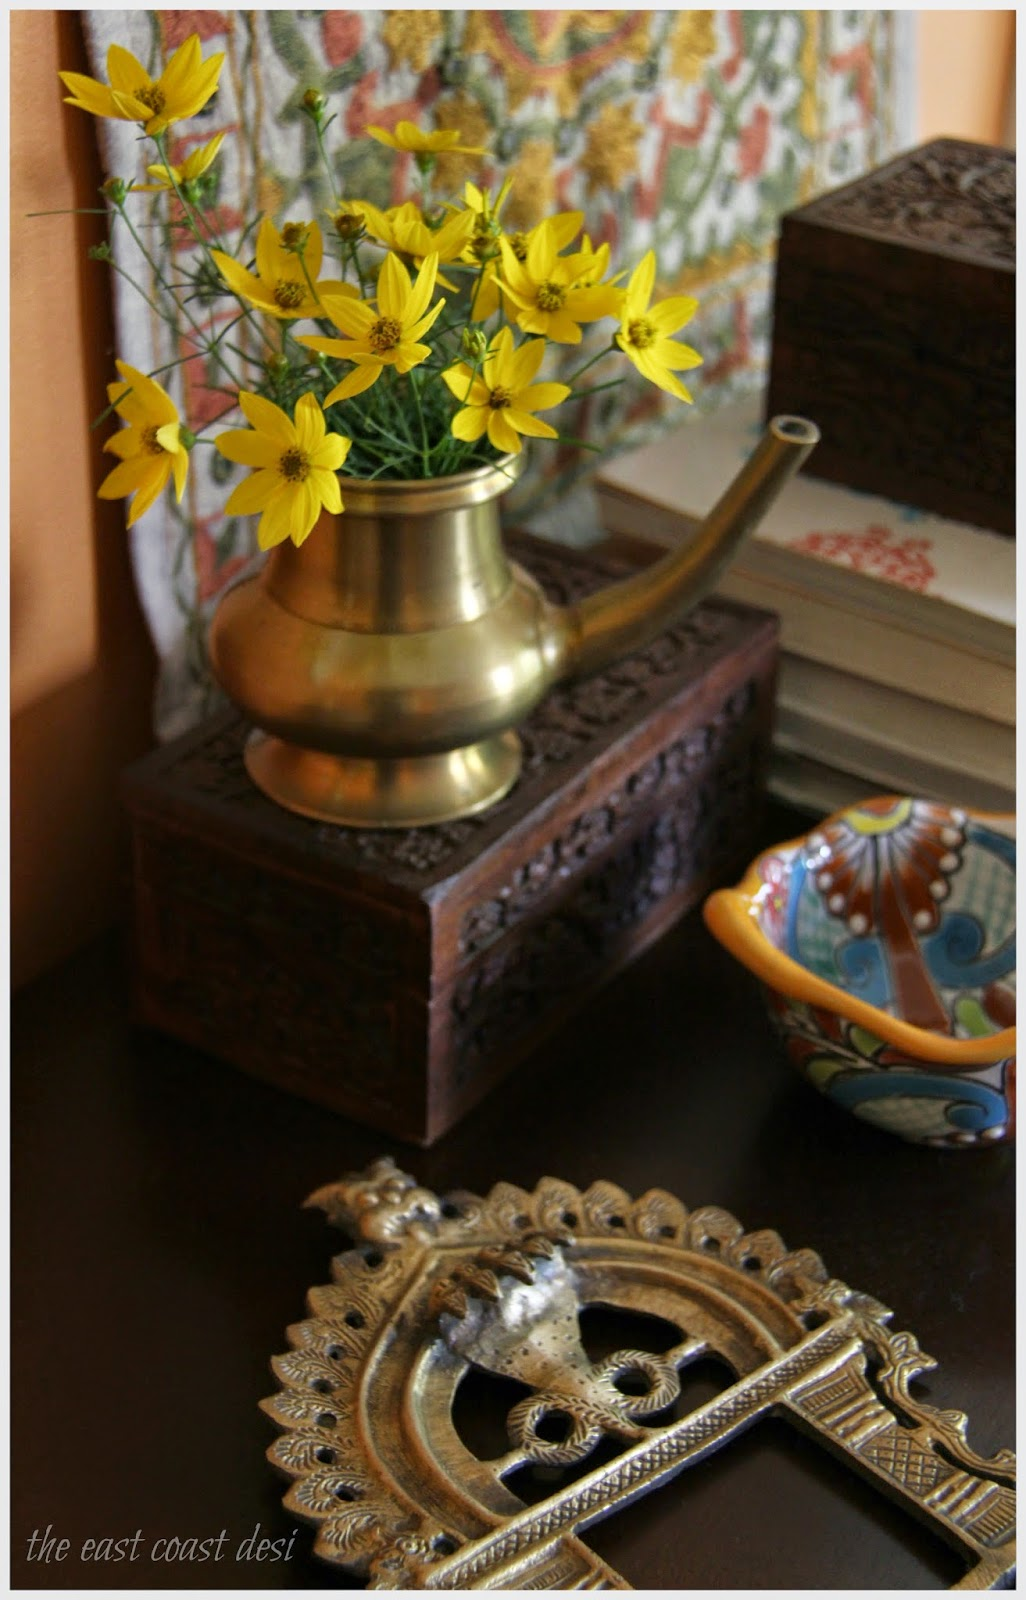 Ganesh chaturthi flowers may flower blog - Pass Up The Regular Glass Vases And Bring In The Traditional Elements At Play For A Festive Environment A Bunch Of Yellow Zagreb S From My Garden Displayed